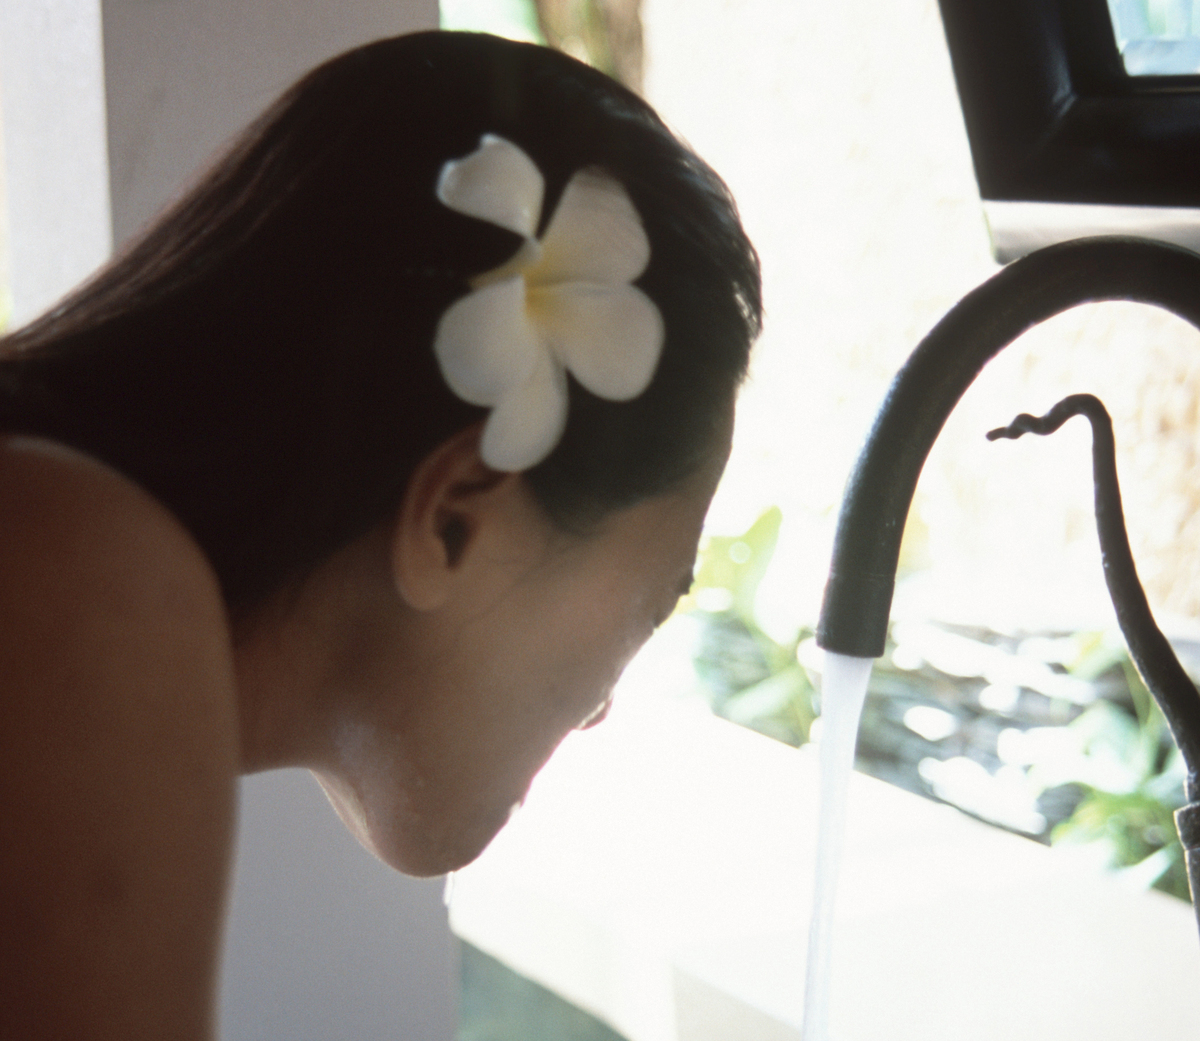 A woman washes her face at the Marriott's Mandara Spa.